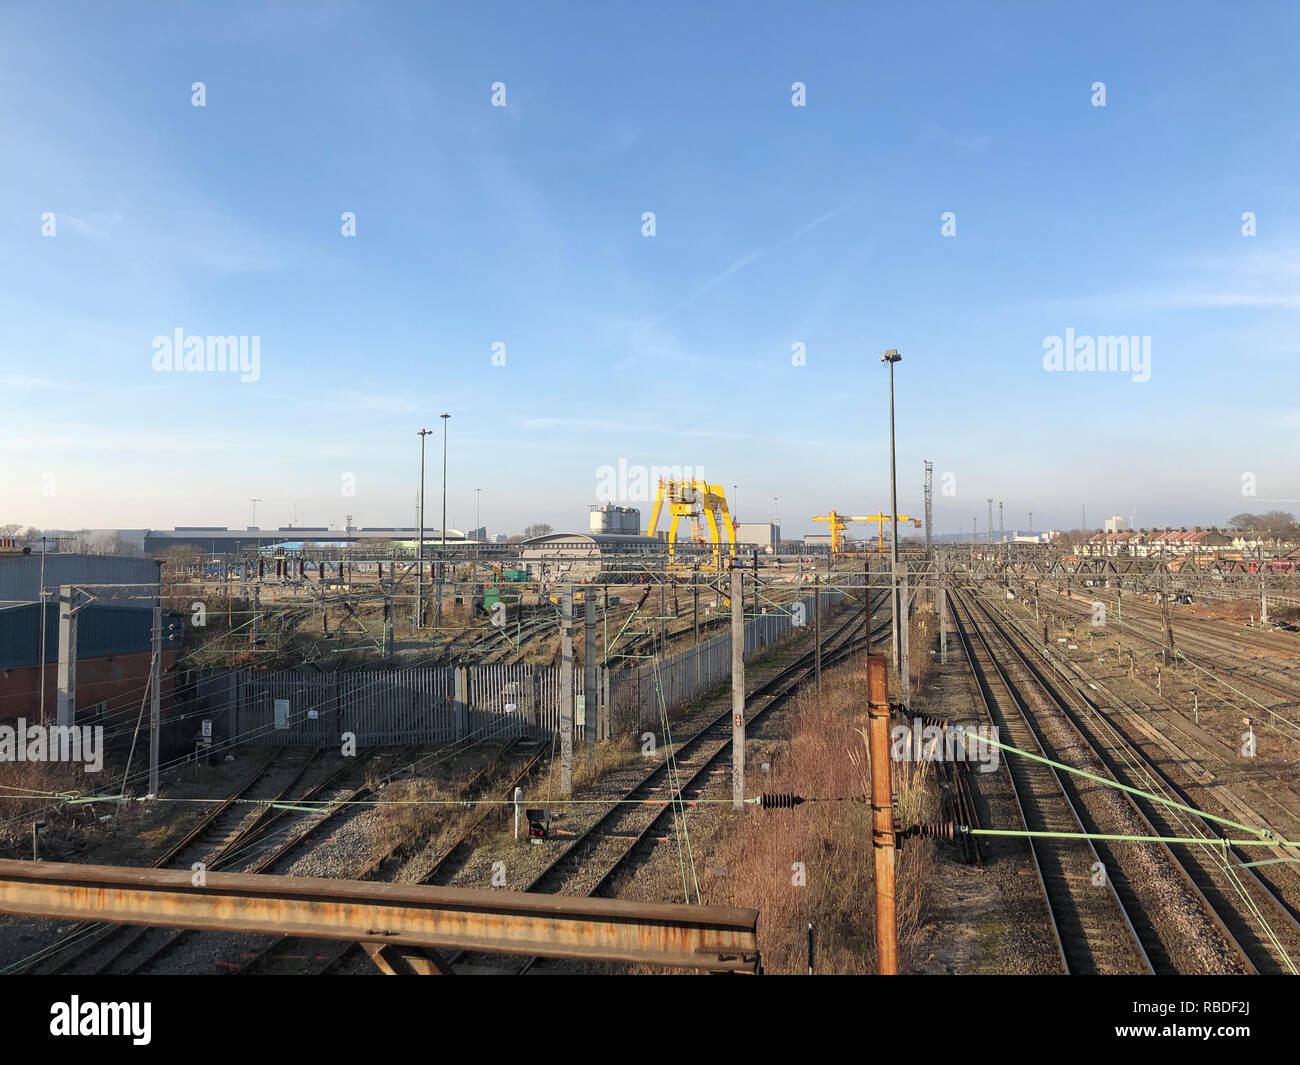 Cranes and Skyline at Willesden Junction/Rail Depot - Stock Image